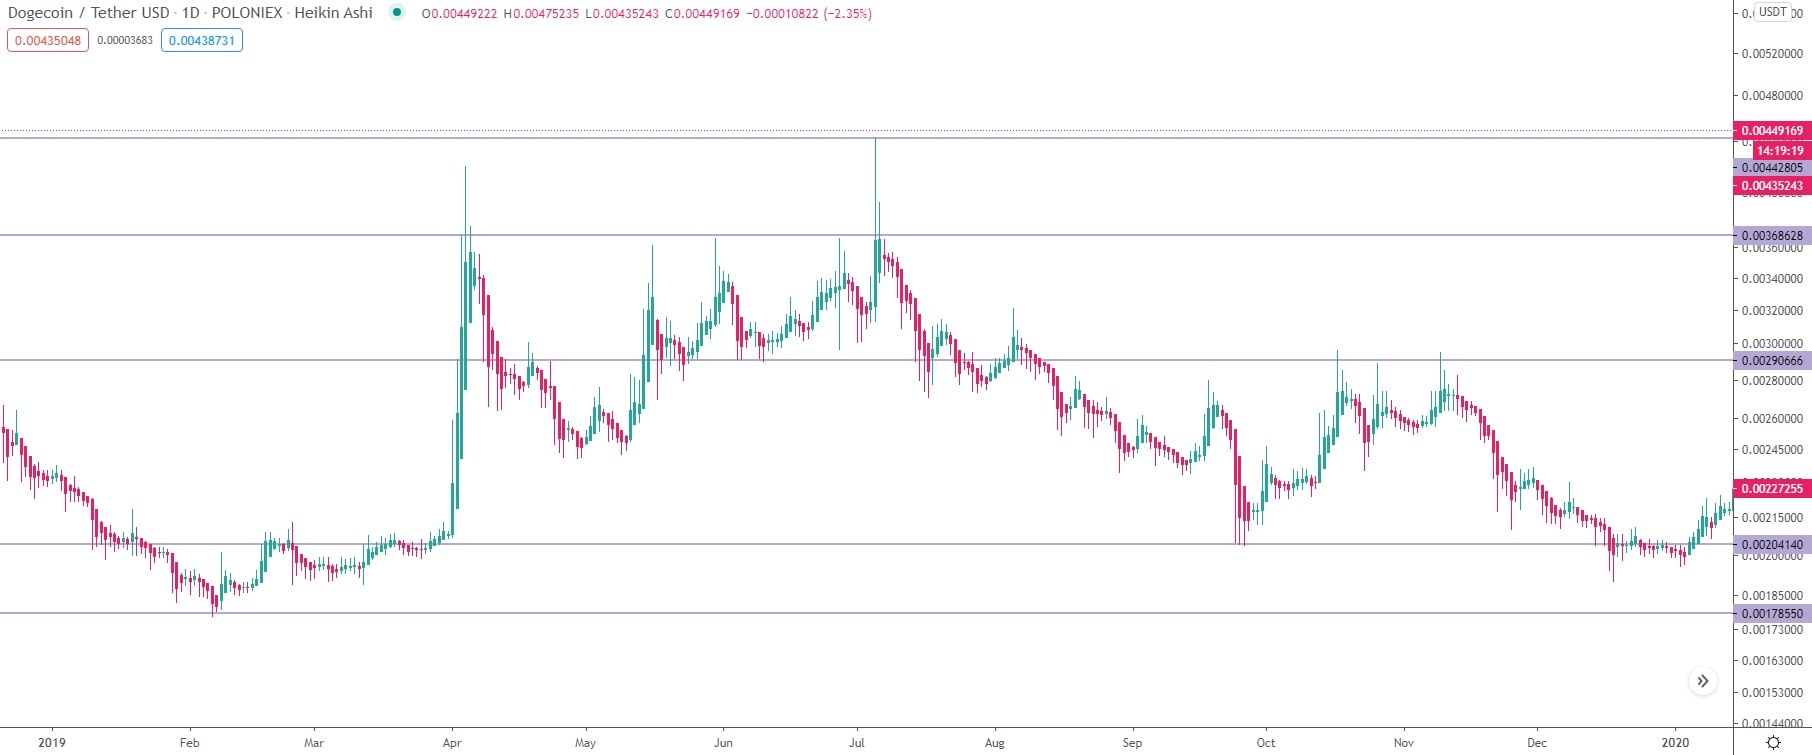 DOGE/USDT daily logarithmic chart in 2019.